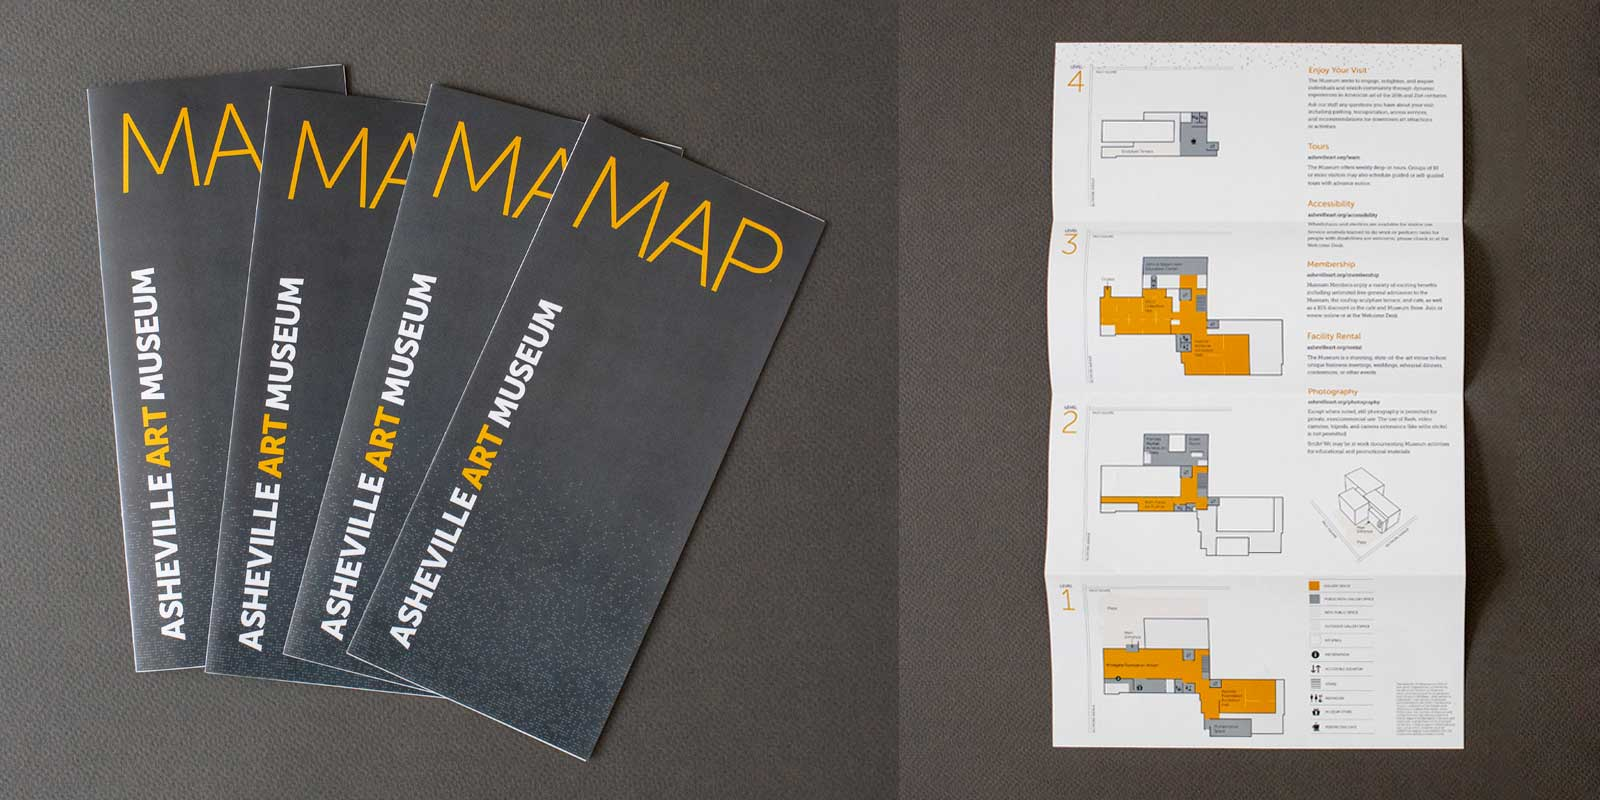 Asheville Art Museum map brochures fanned out against a gray background. Open brochure shows map for each of four levels of the museum.